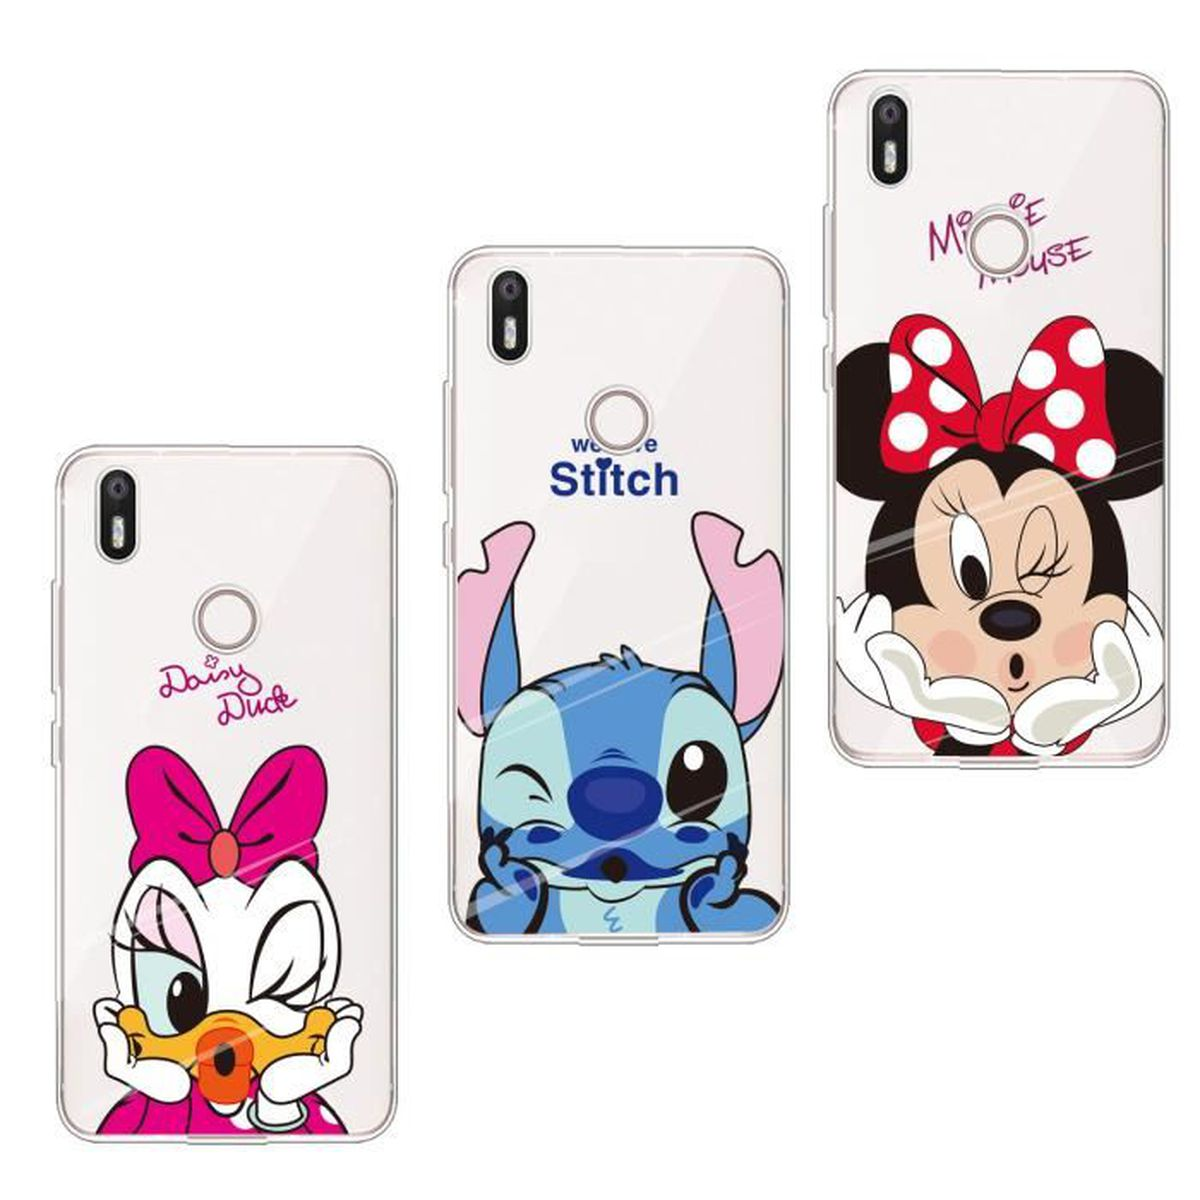 huawei p smart 2019 coque silicone disney